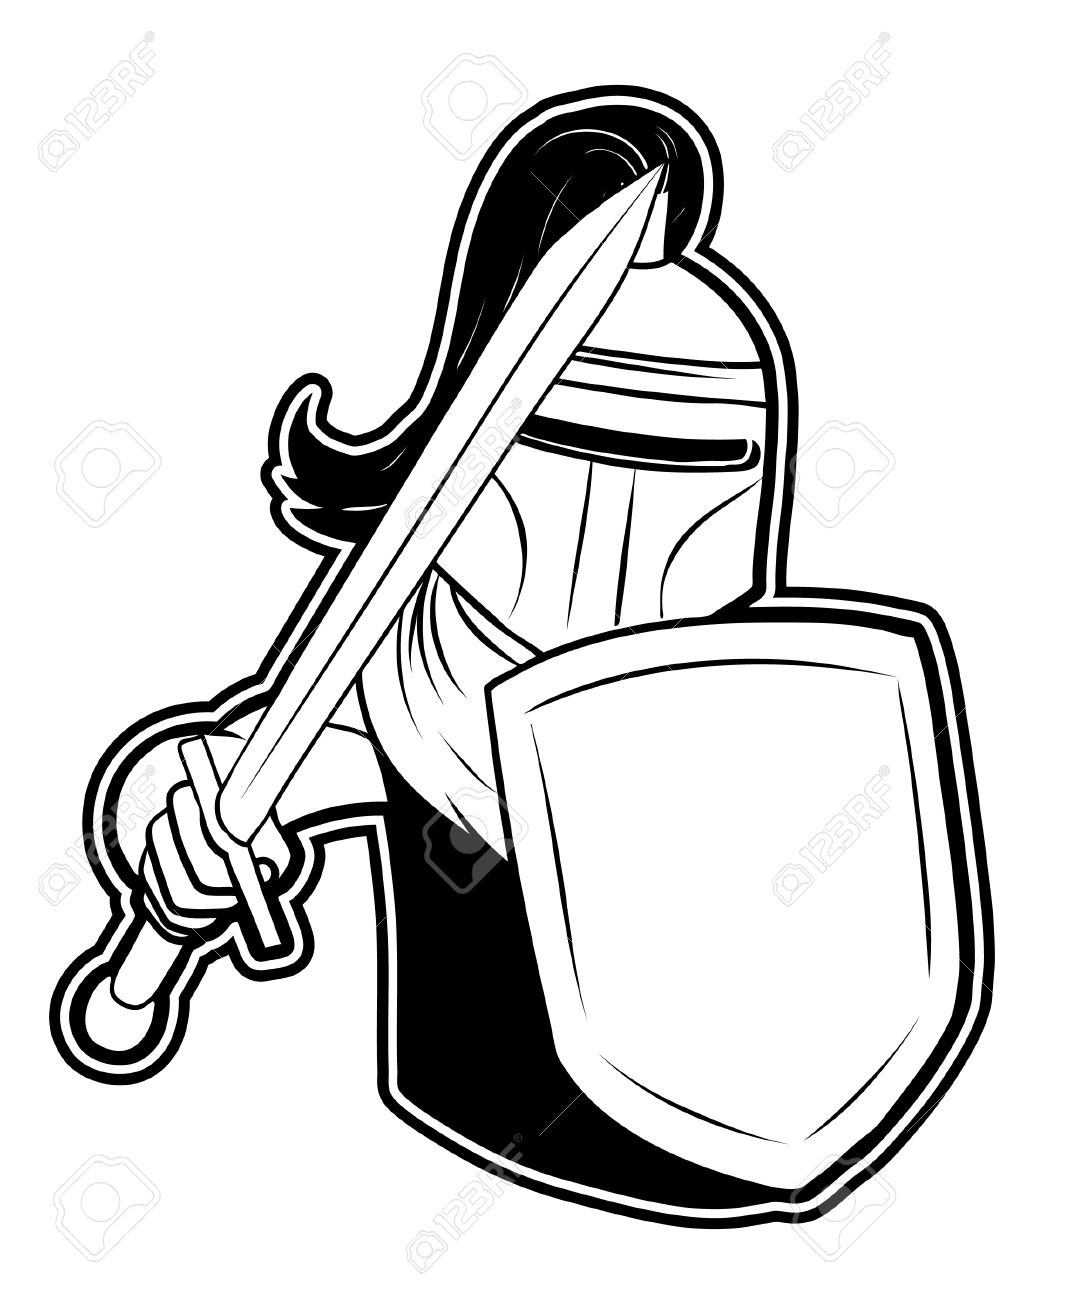 Peasant clipart black and white clip black and white Medival Clipart   Free download best Medival Clipart on ClipArtMag.com clip black and white